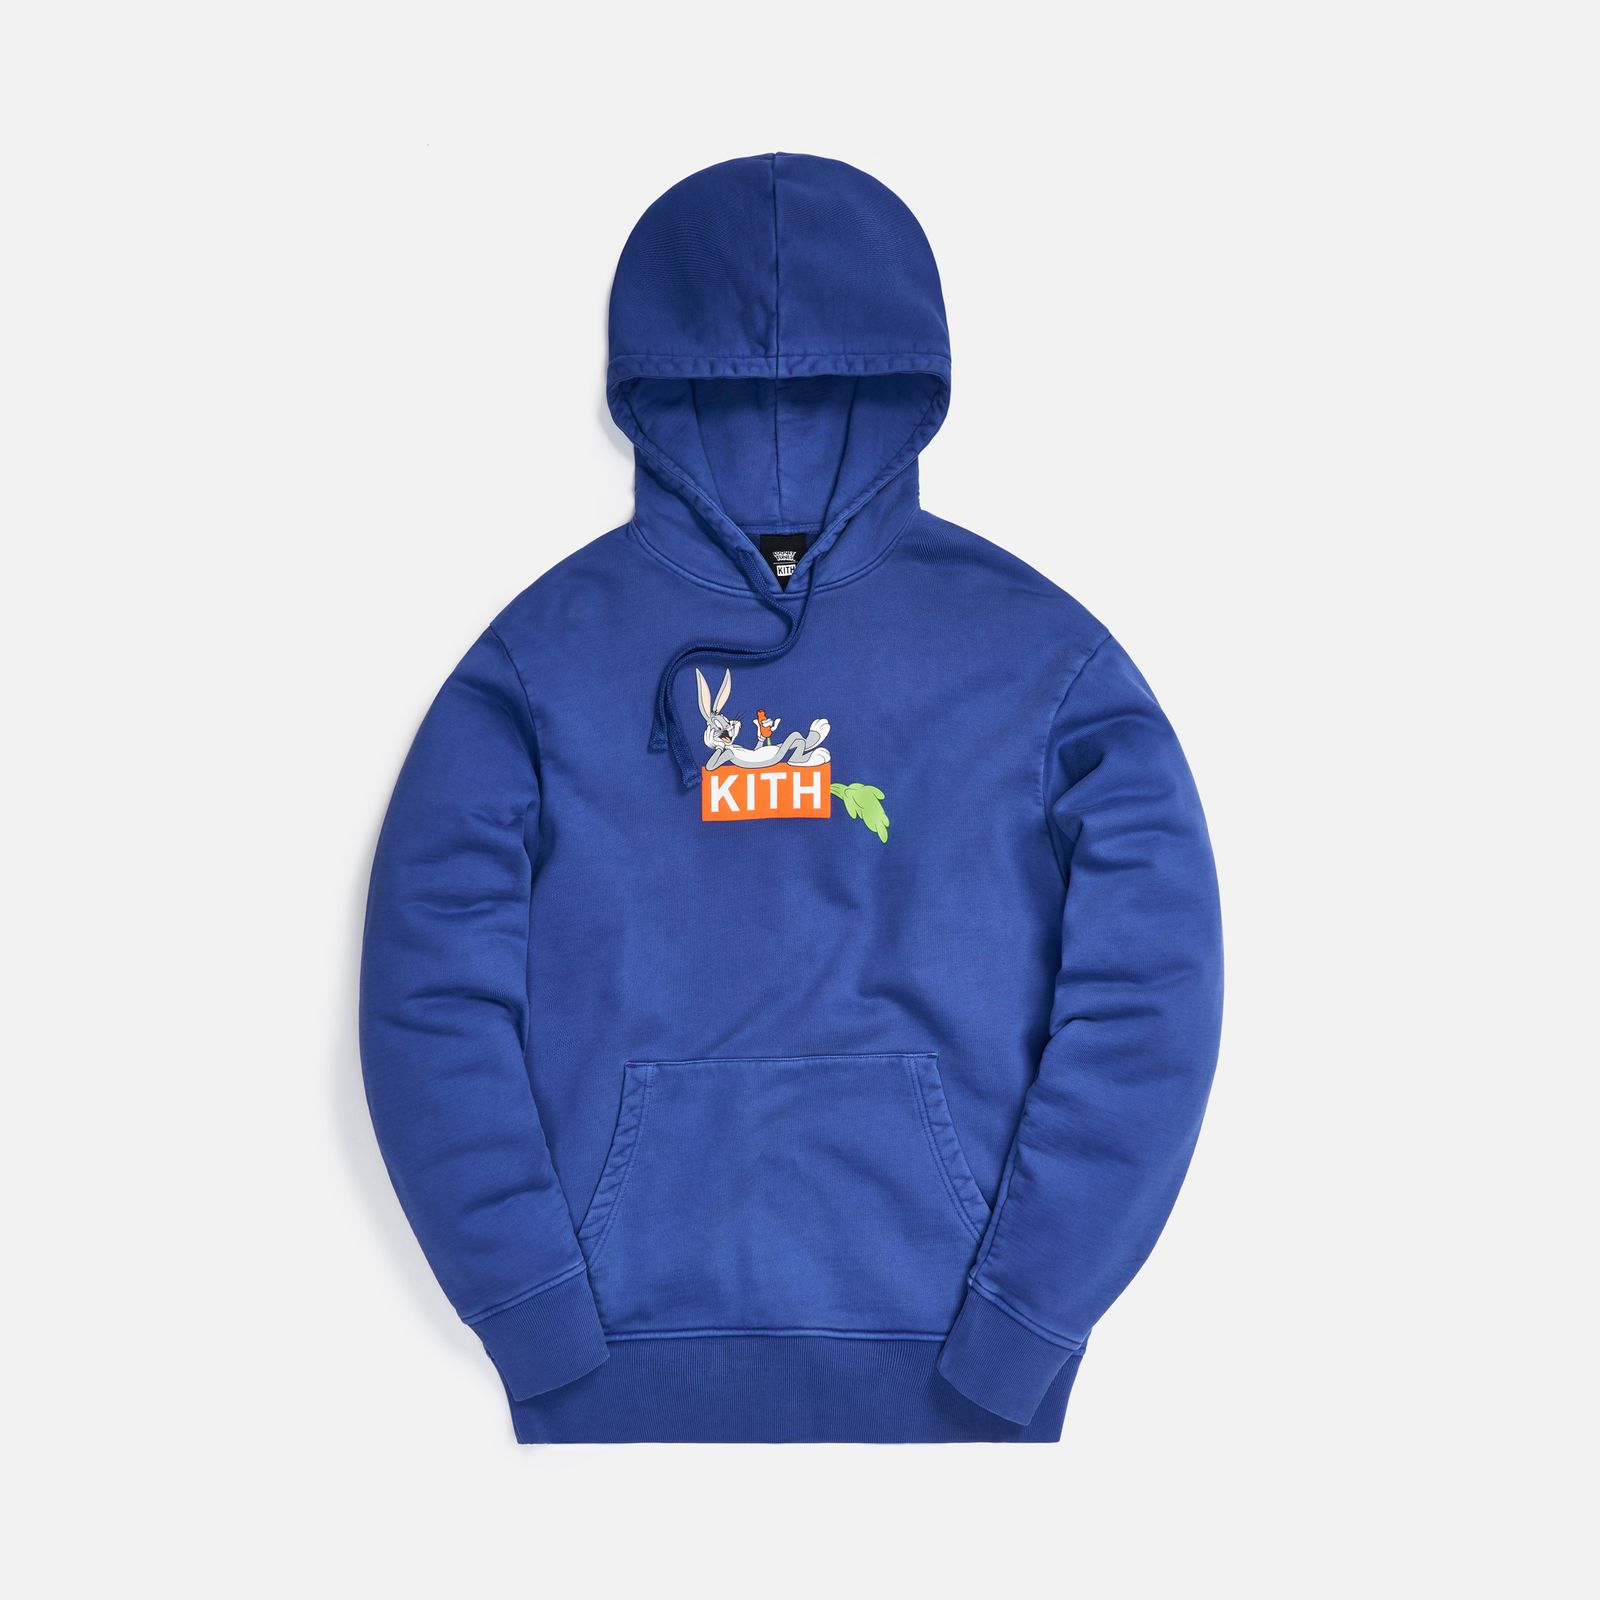 kith-looney-tunes-collab-10